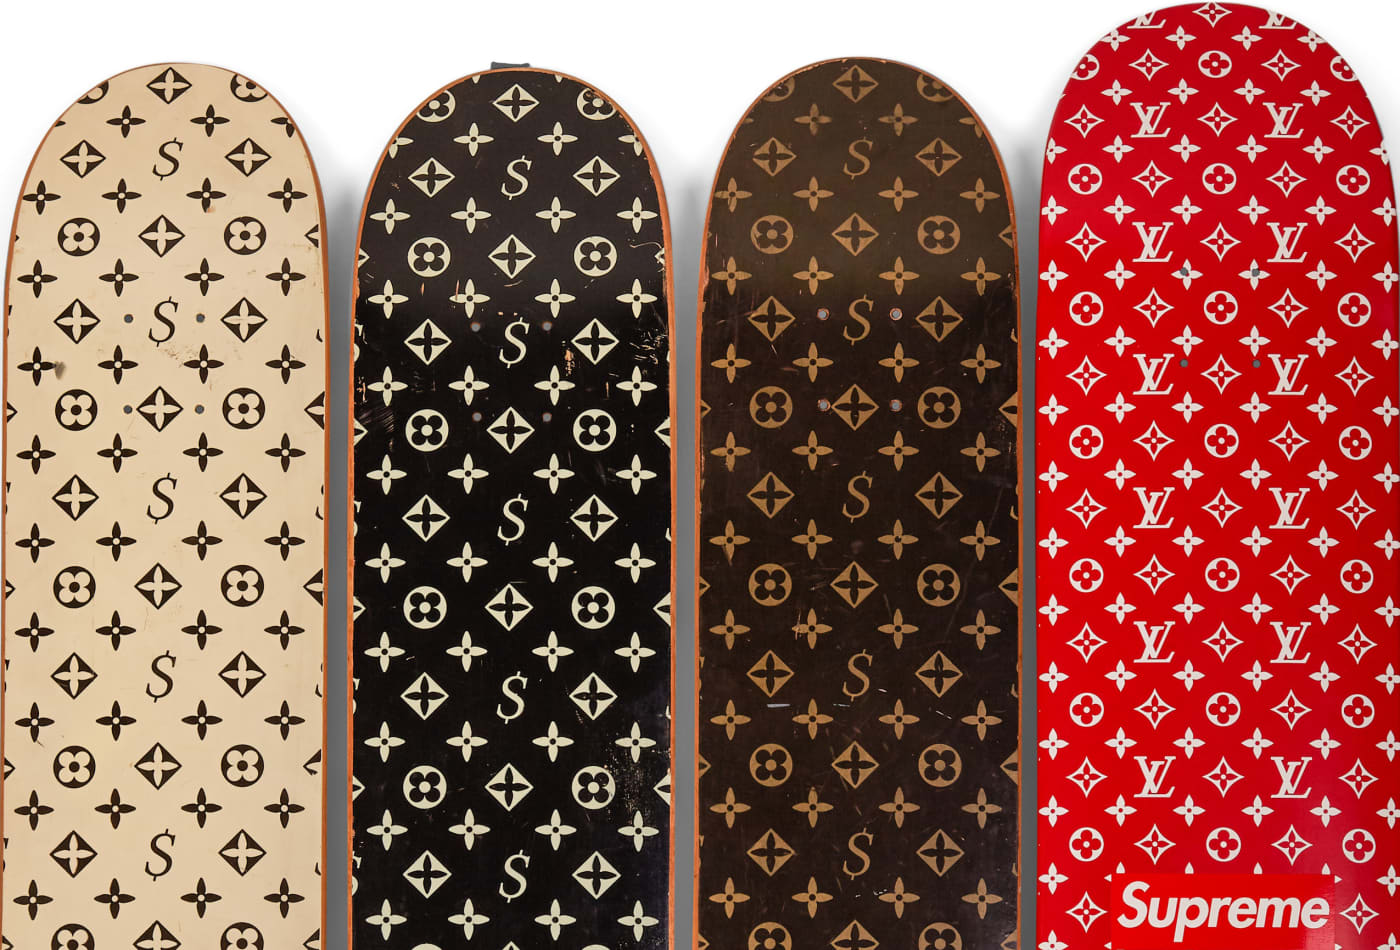 How Supreme went from a small NYC skateboard shop to a $1 billion global phenomenon